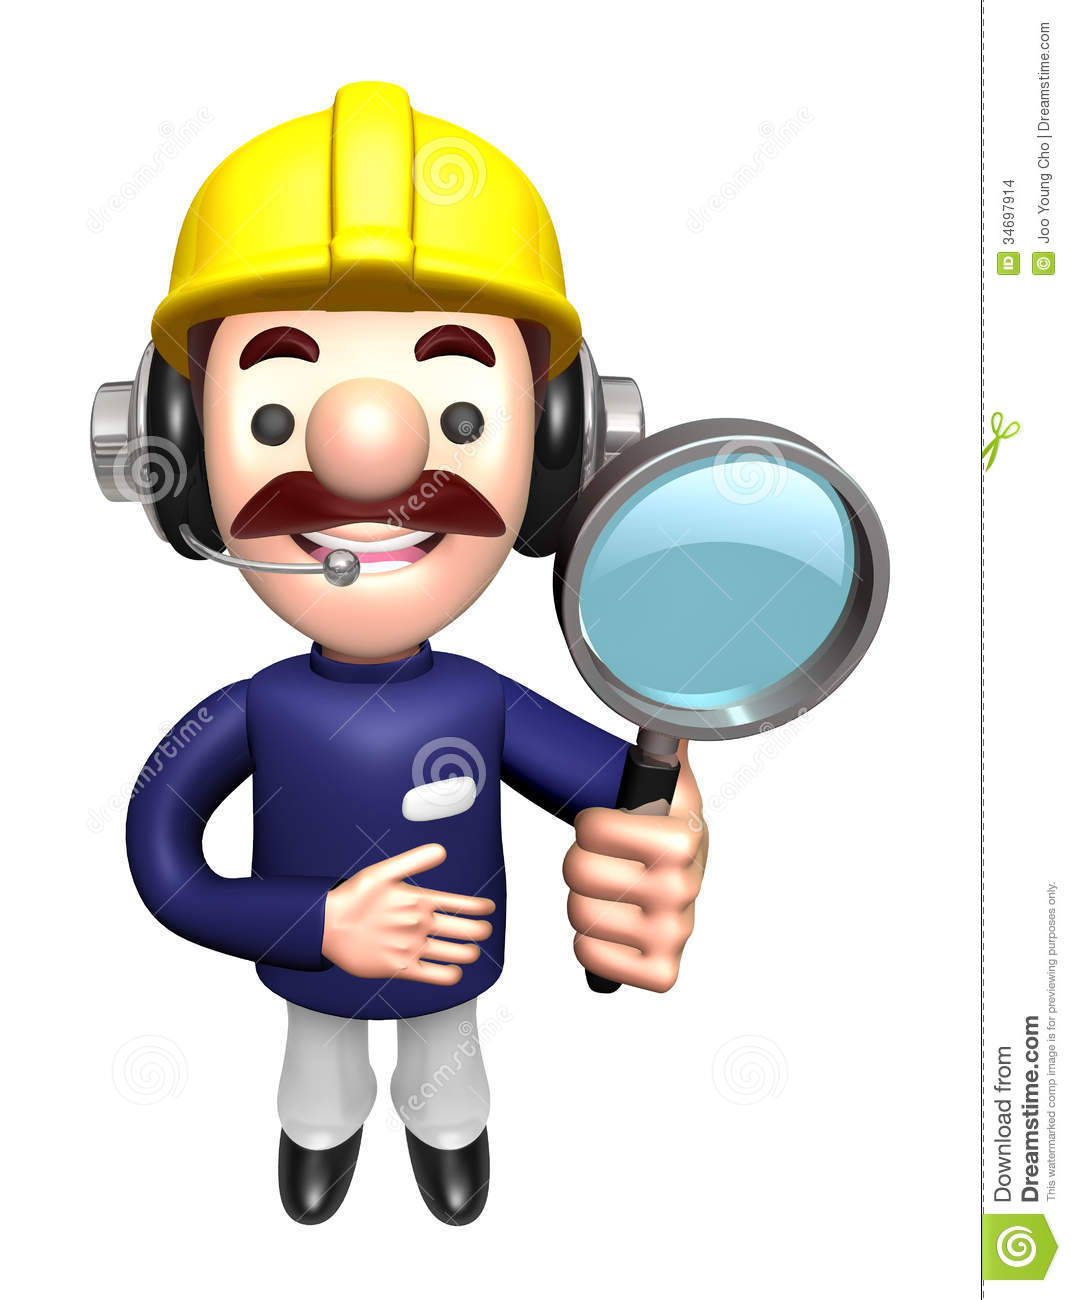 Character Design Careers : D construction site man mascot examine a with magnifying